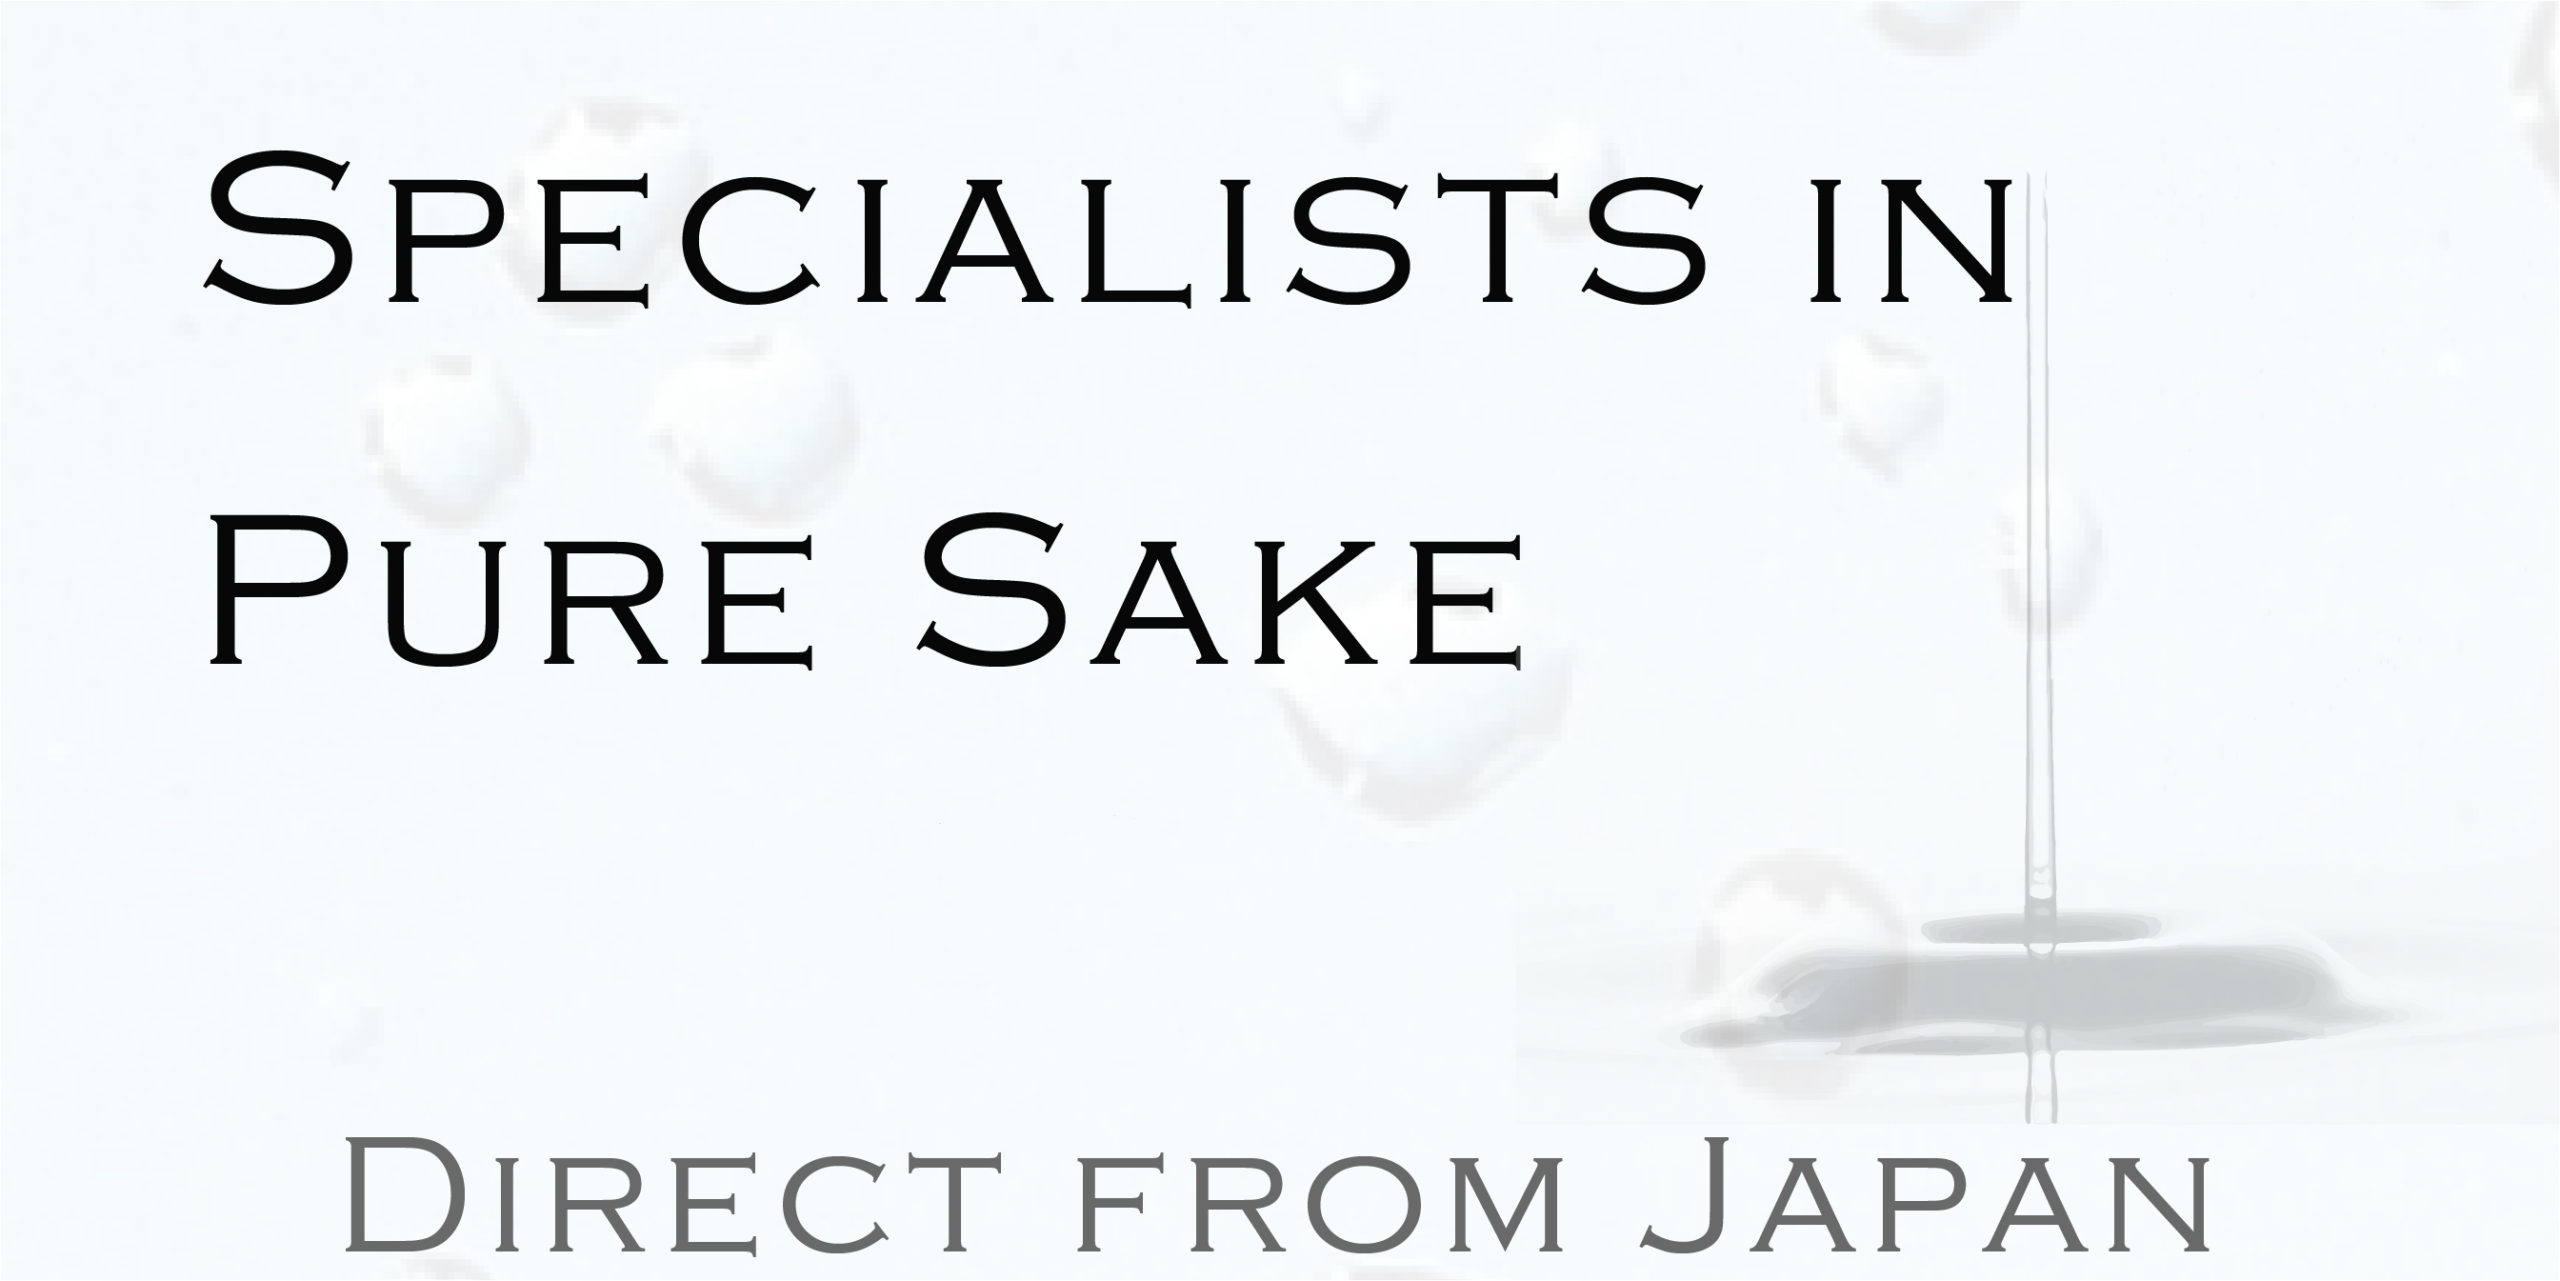 pure-sake-direct-from-japan